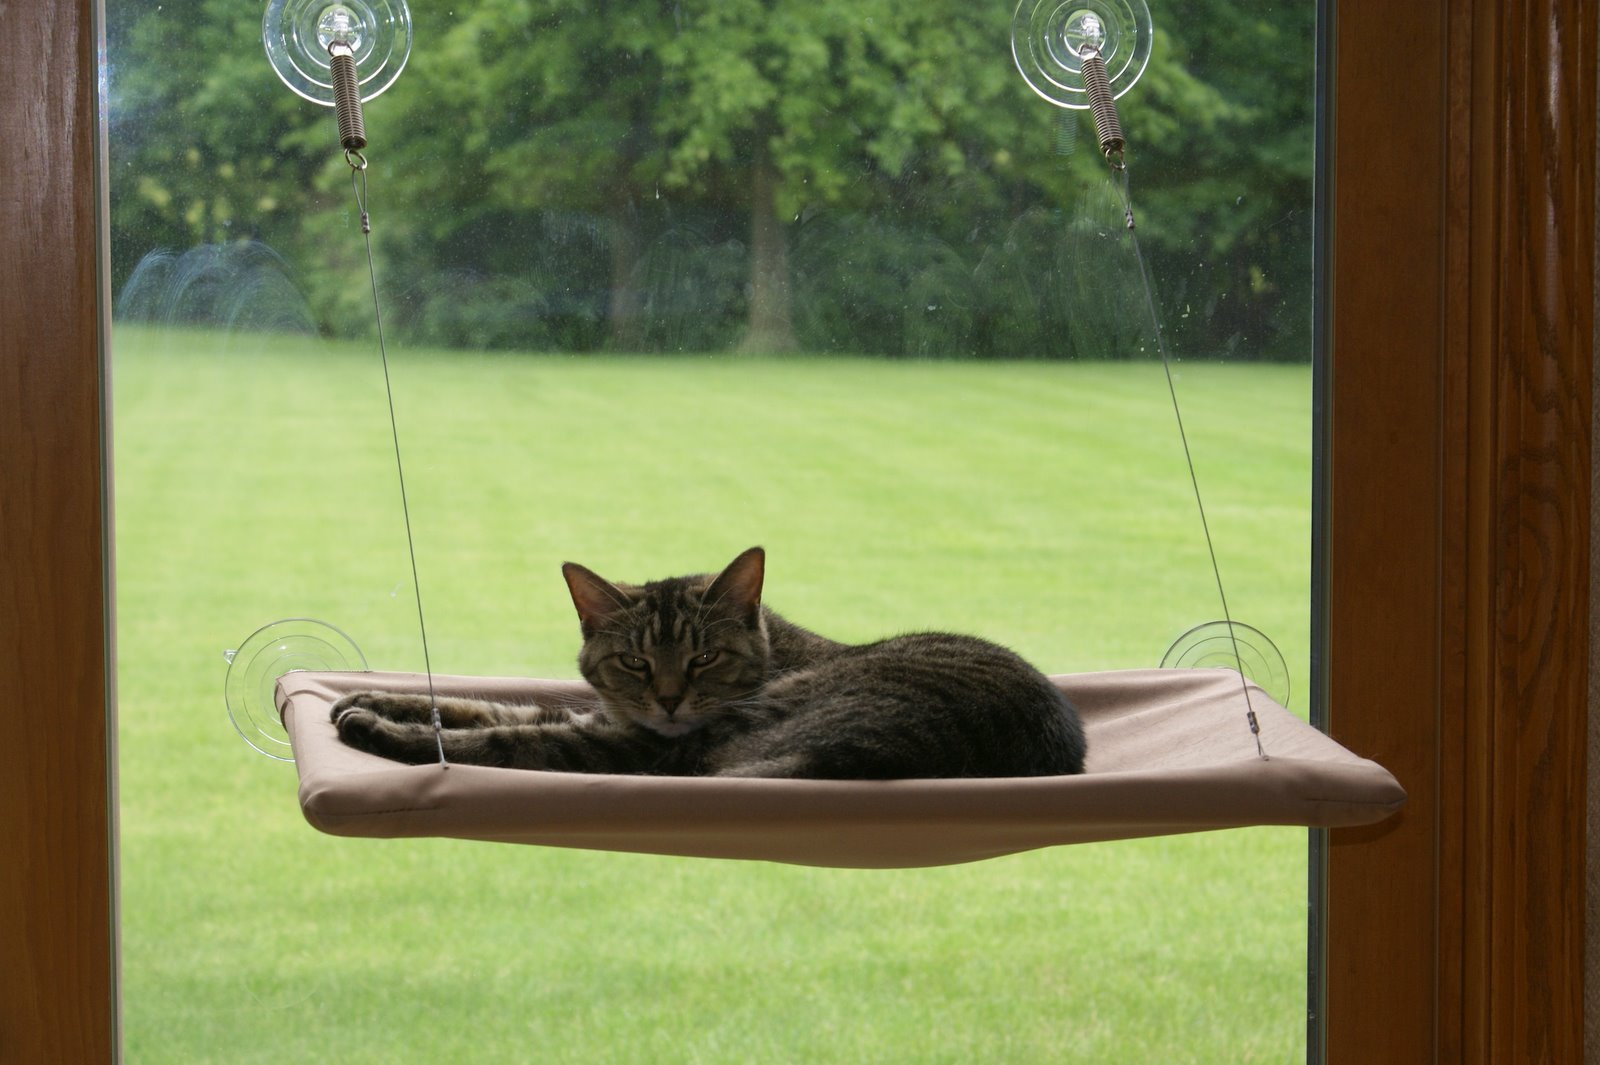 Groovy Sunny Seat Cat Bed Stores To Buy Headphones Andrewgaddart Wooden Chair Designs For Living Room Andrewgaddartcom